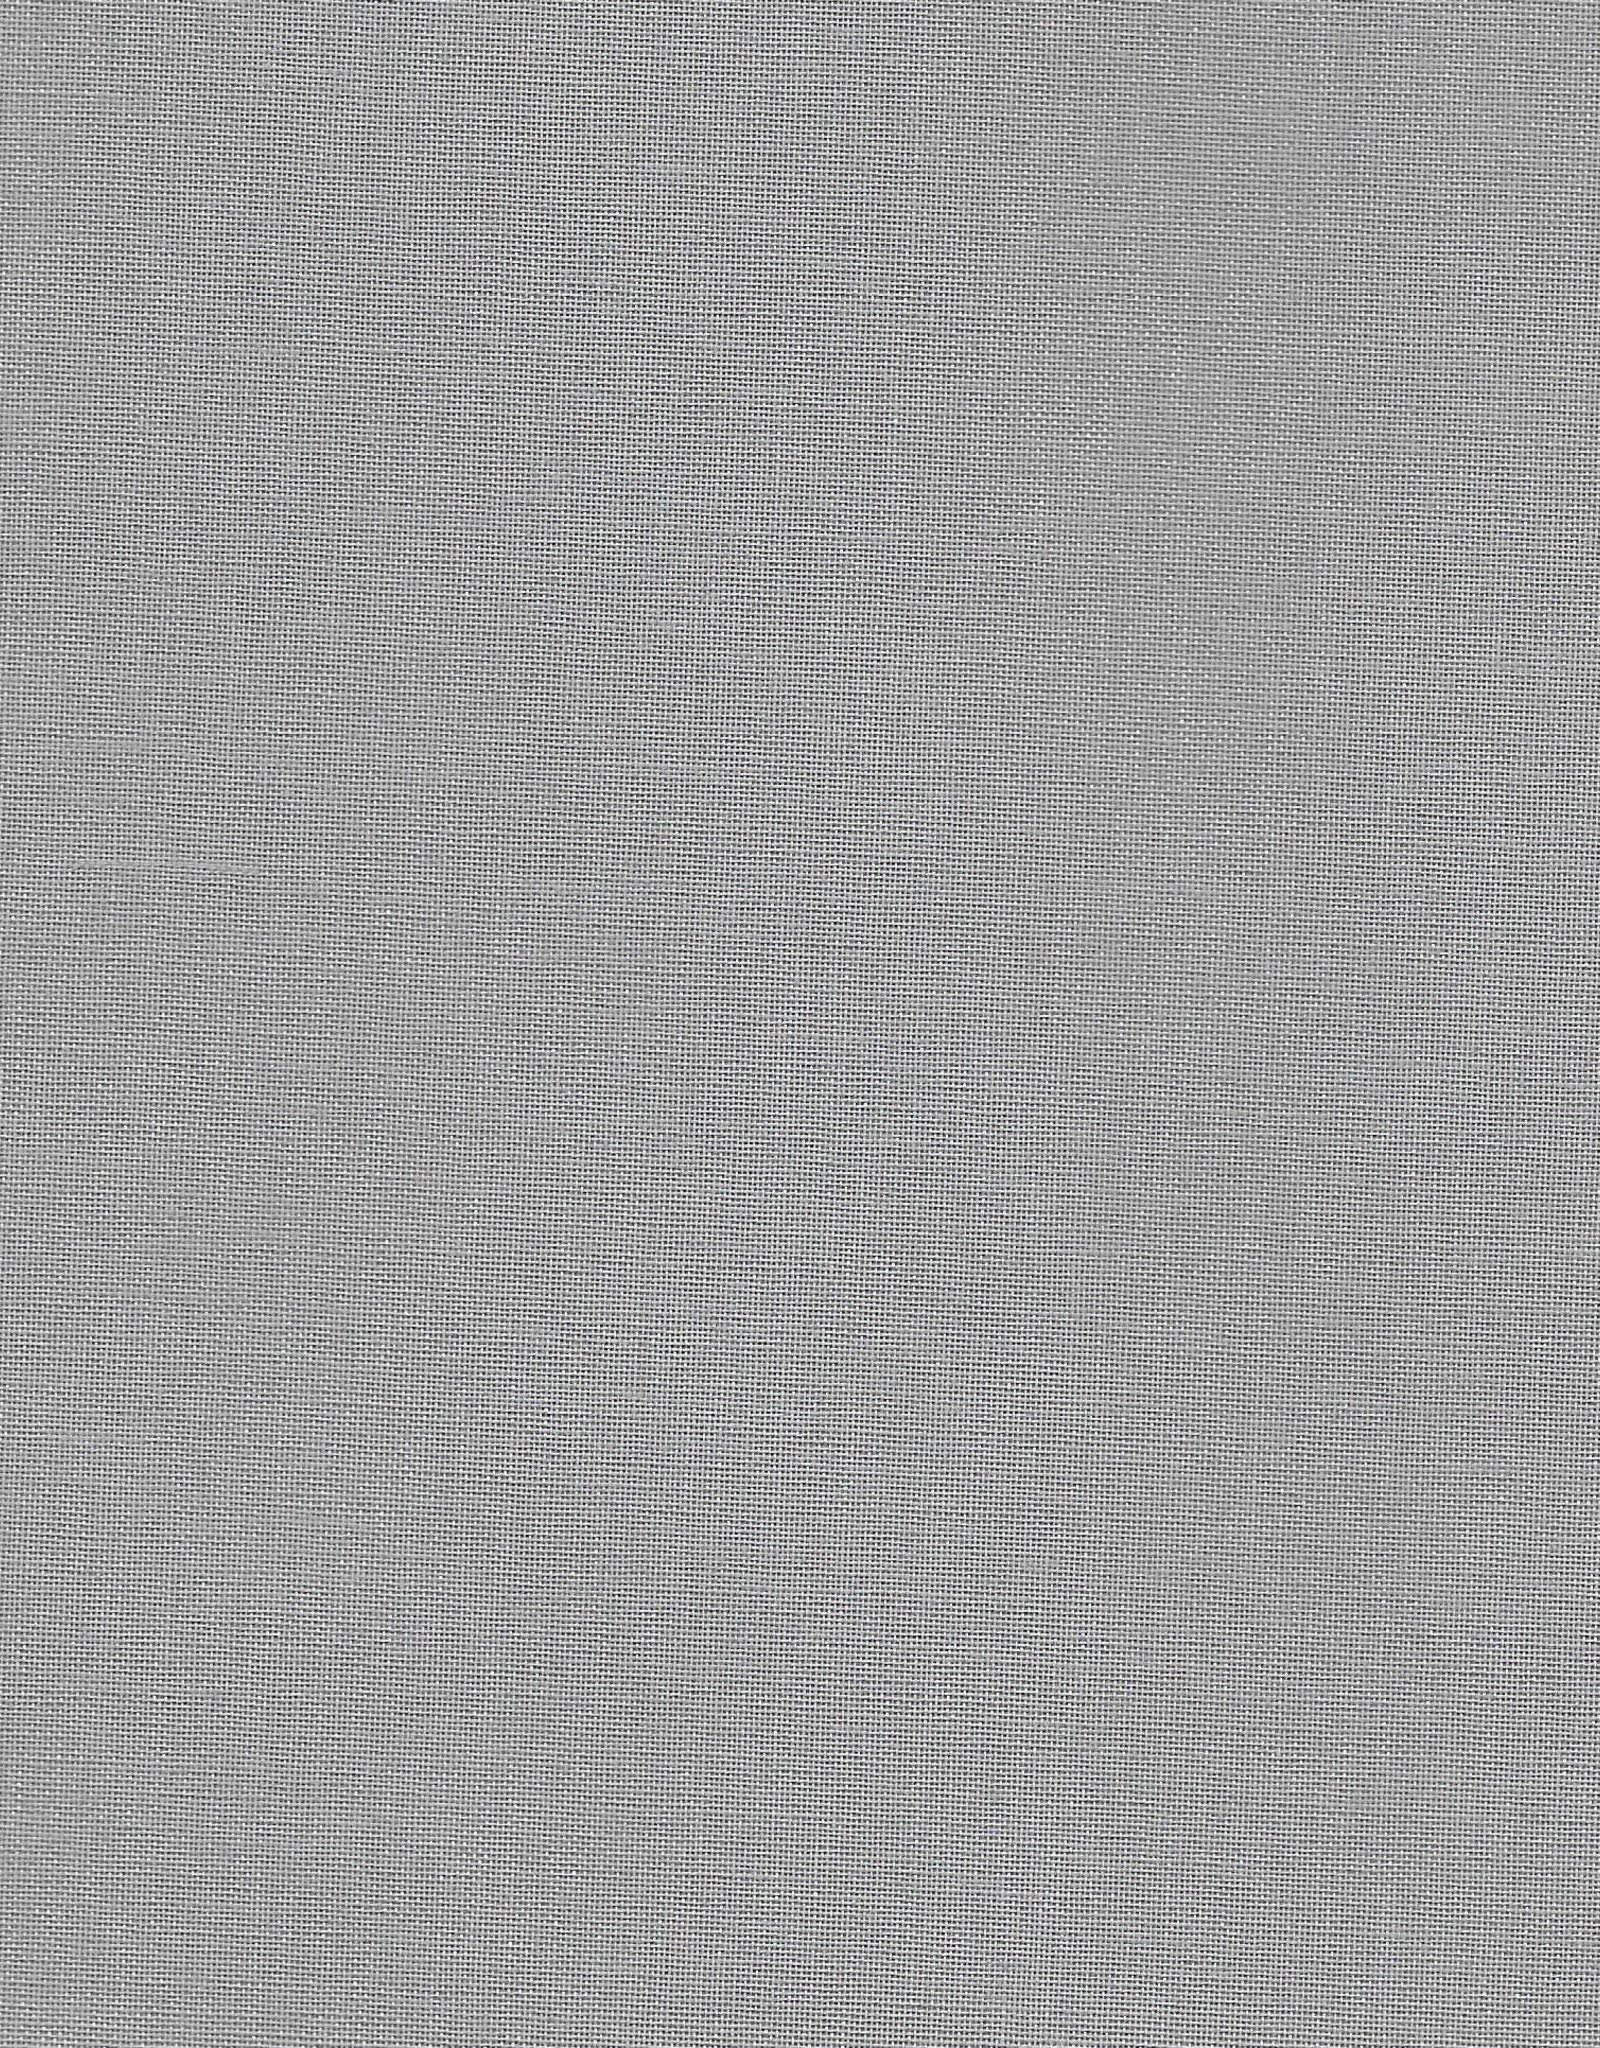 "Book Cloth Light Gray, 17"" x 38"", 3 Sheets, Acid-Free, 100% Rayon, Paper Backed"